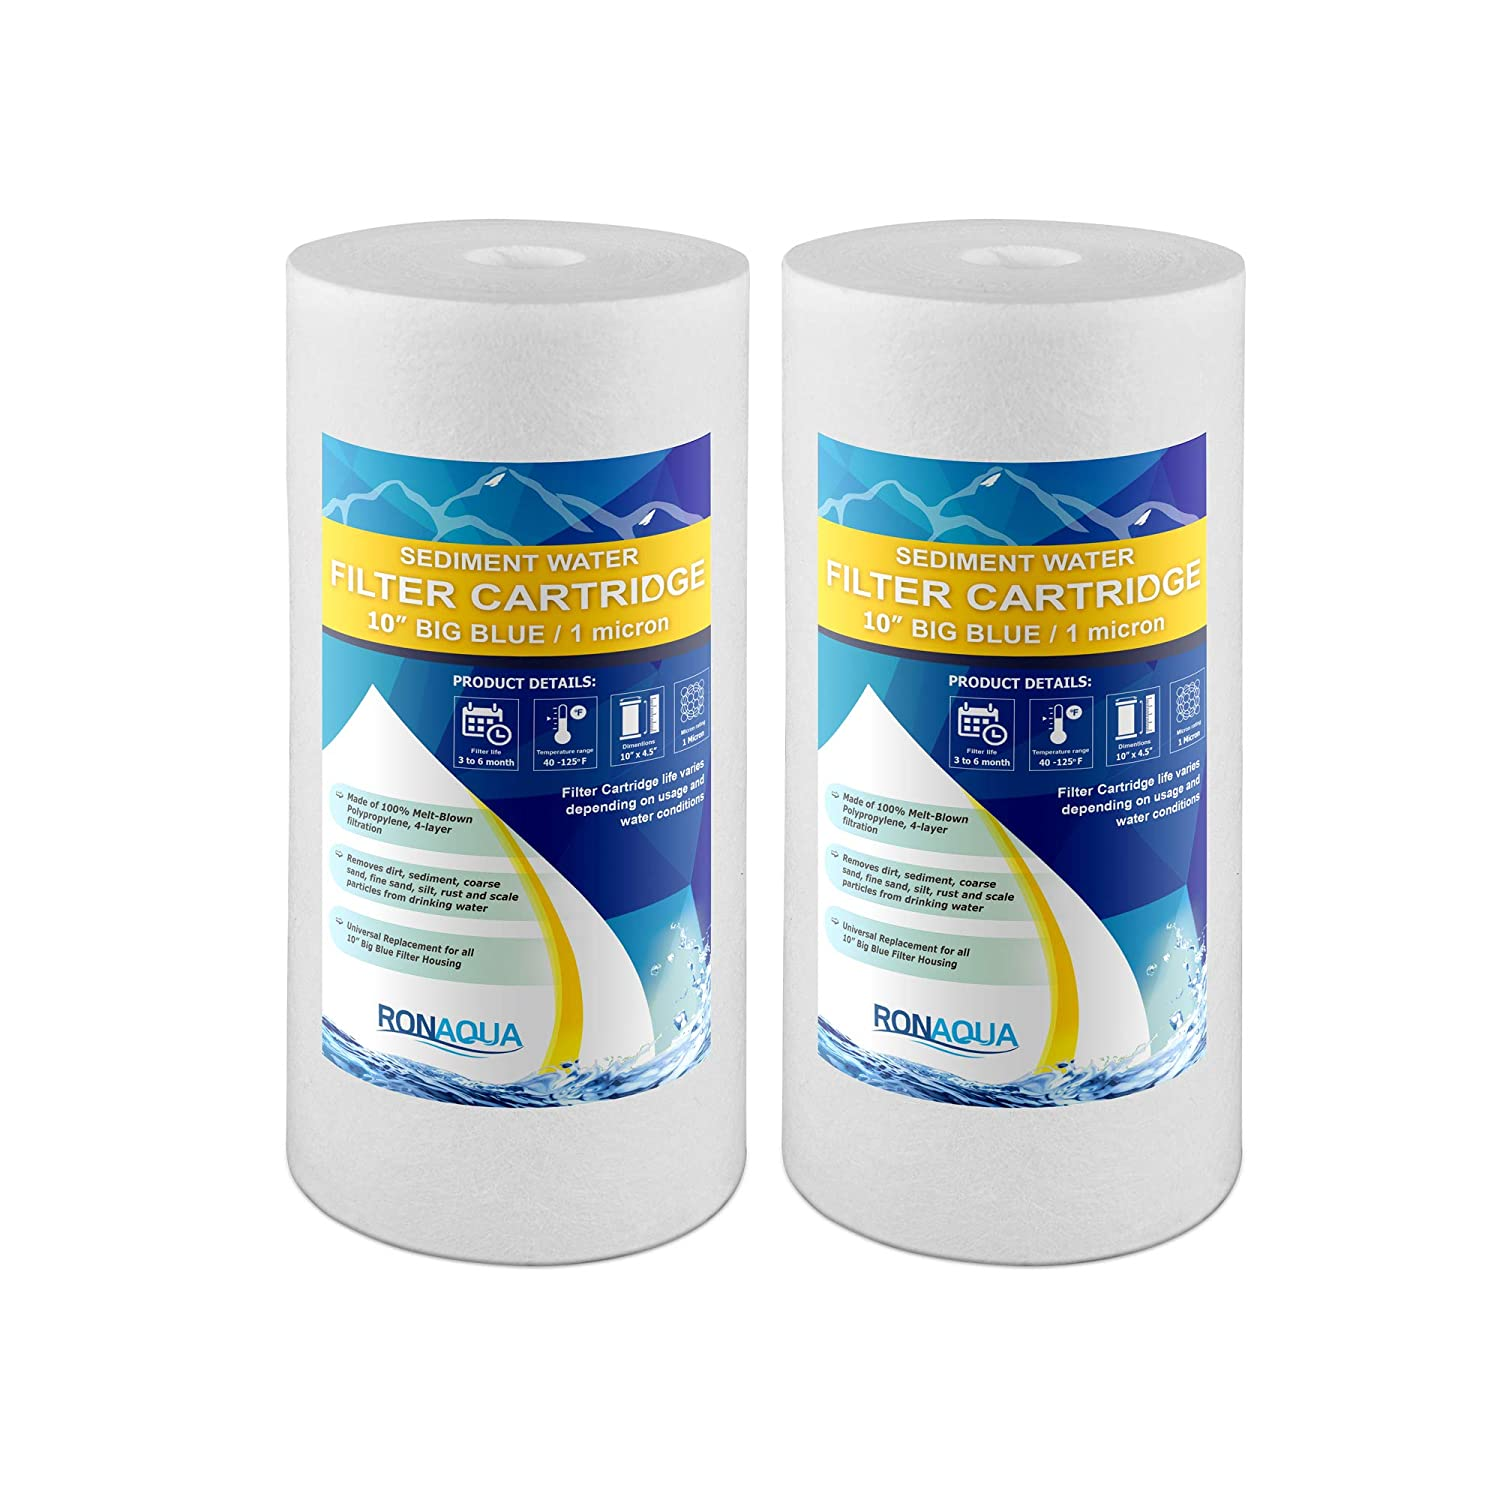 2 Pack, 20 Big Blue Sediment Replacement Water Filters 1 Micron 4.5x 20 Cartridges by Ronaqua